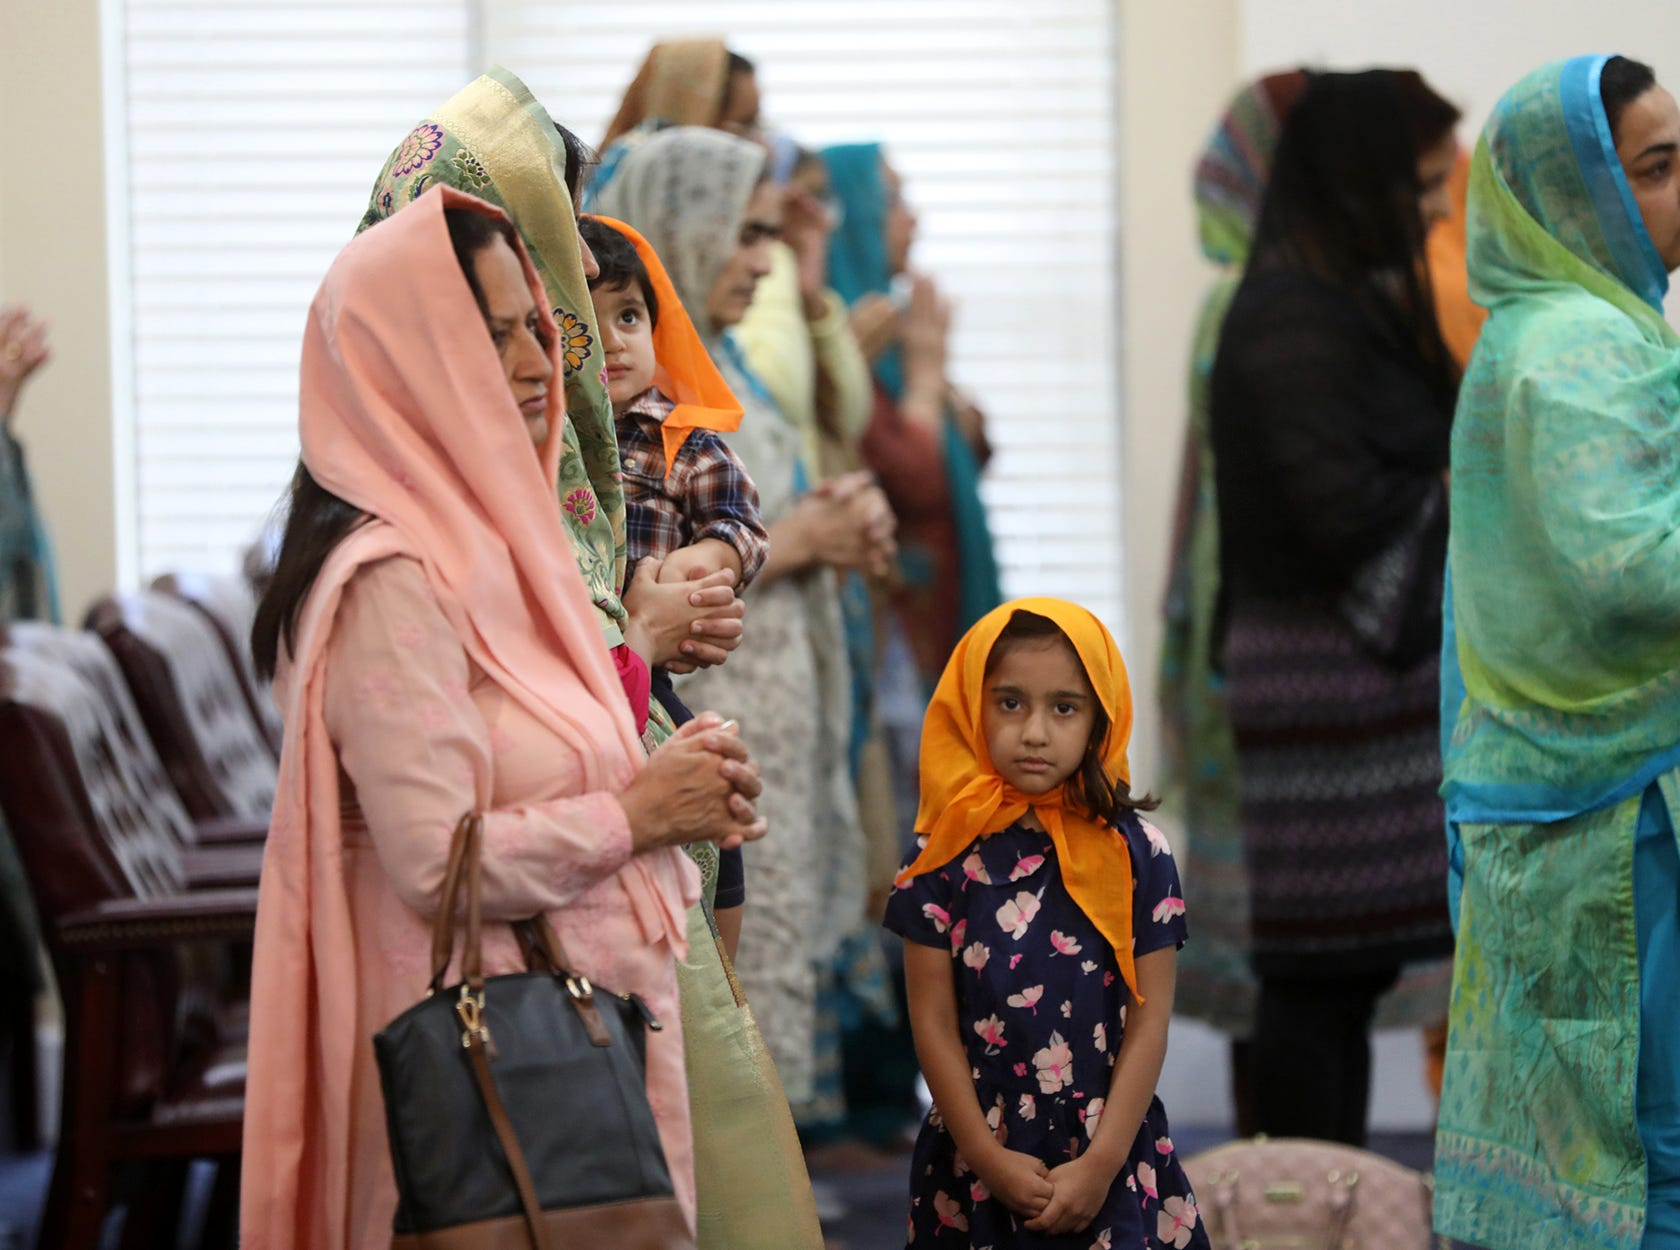 People are shown at Guru Nanak Sikh Mission, in Oakland, during Sunday prayers, August 19, 2018.